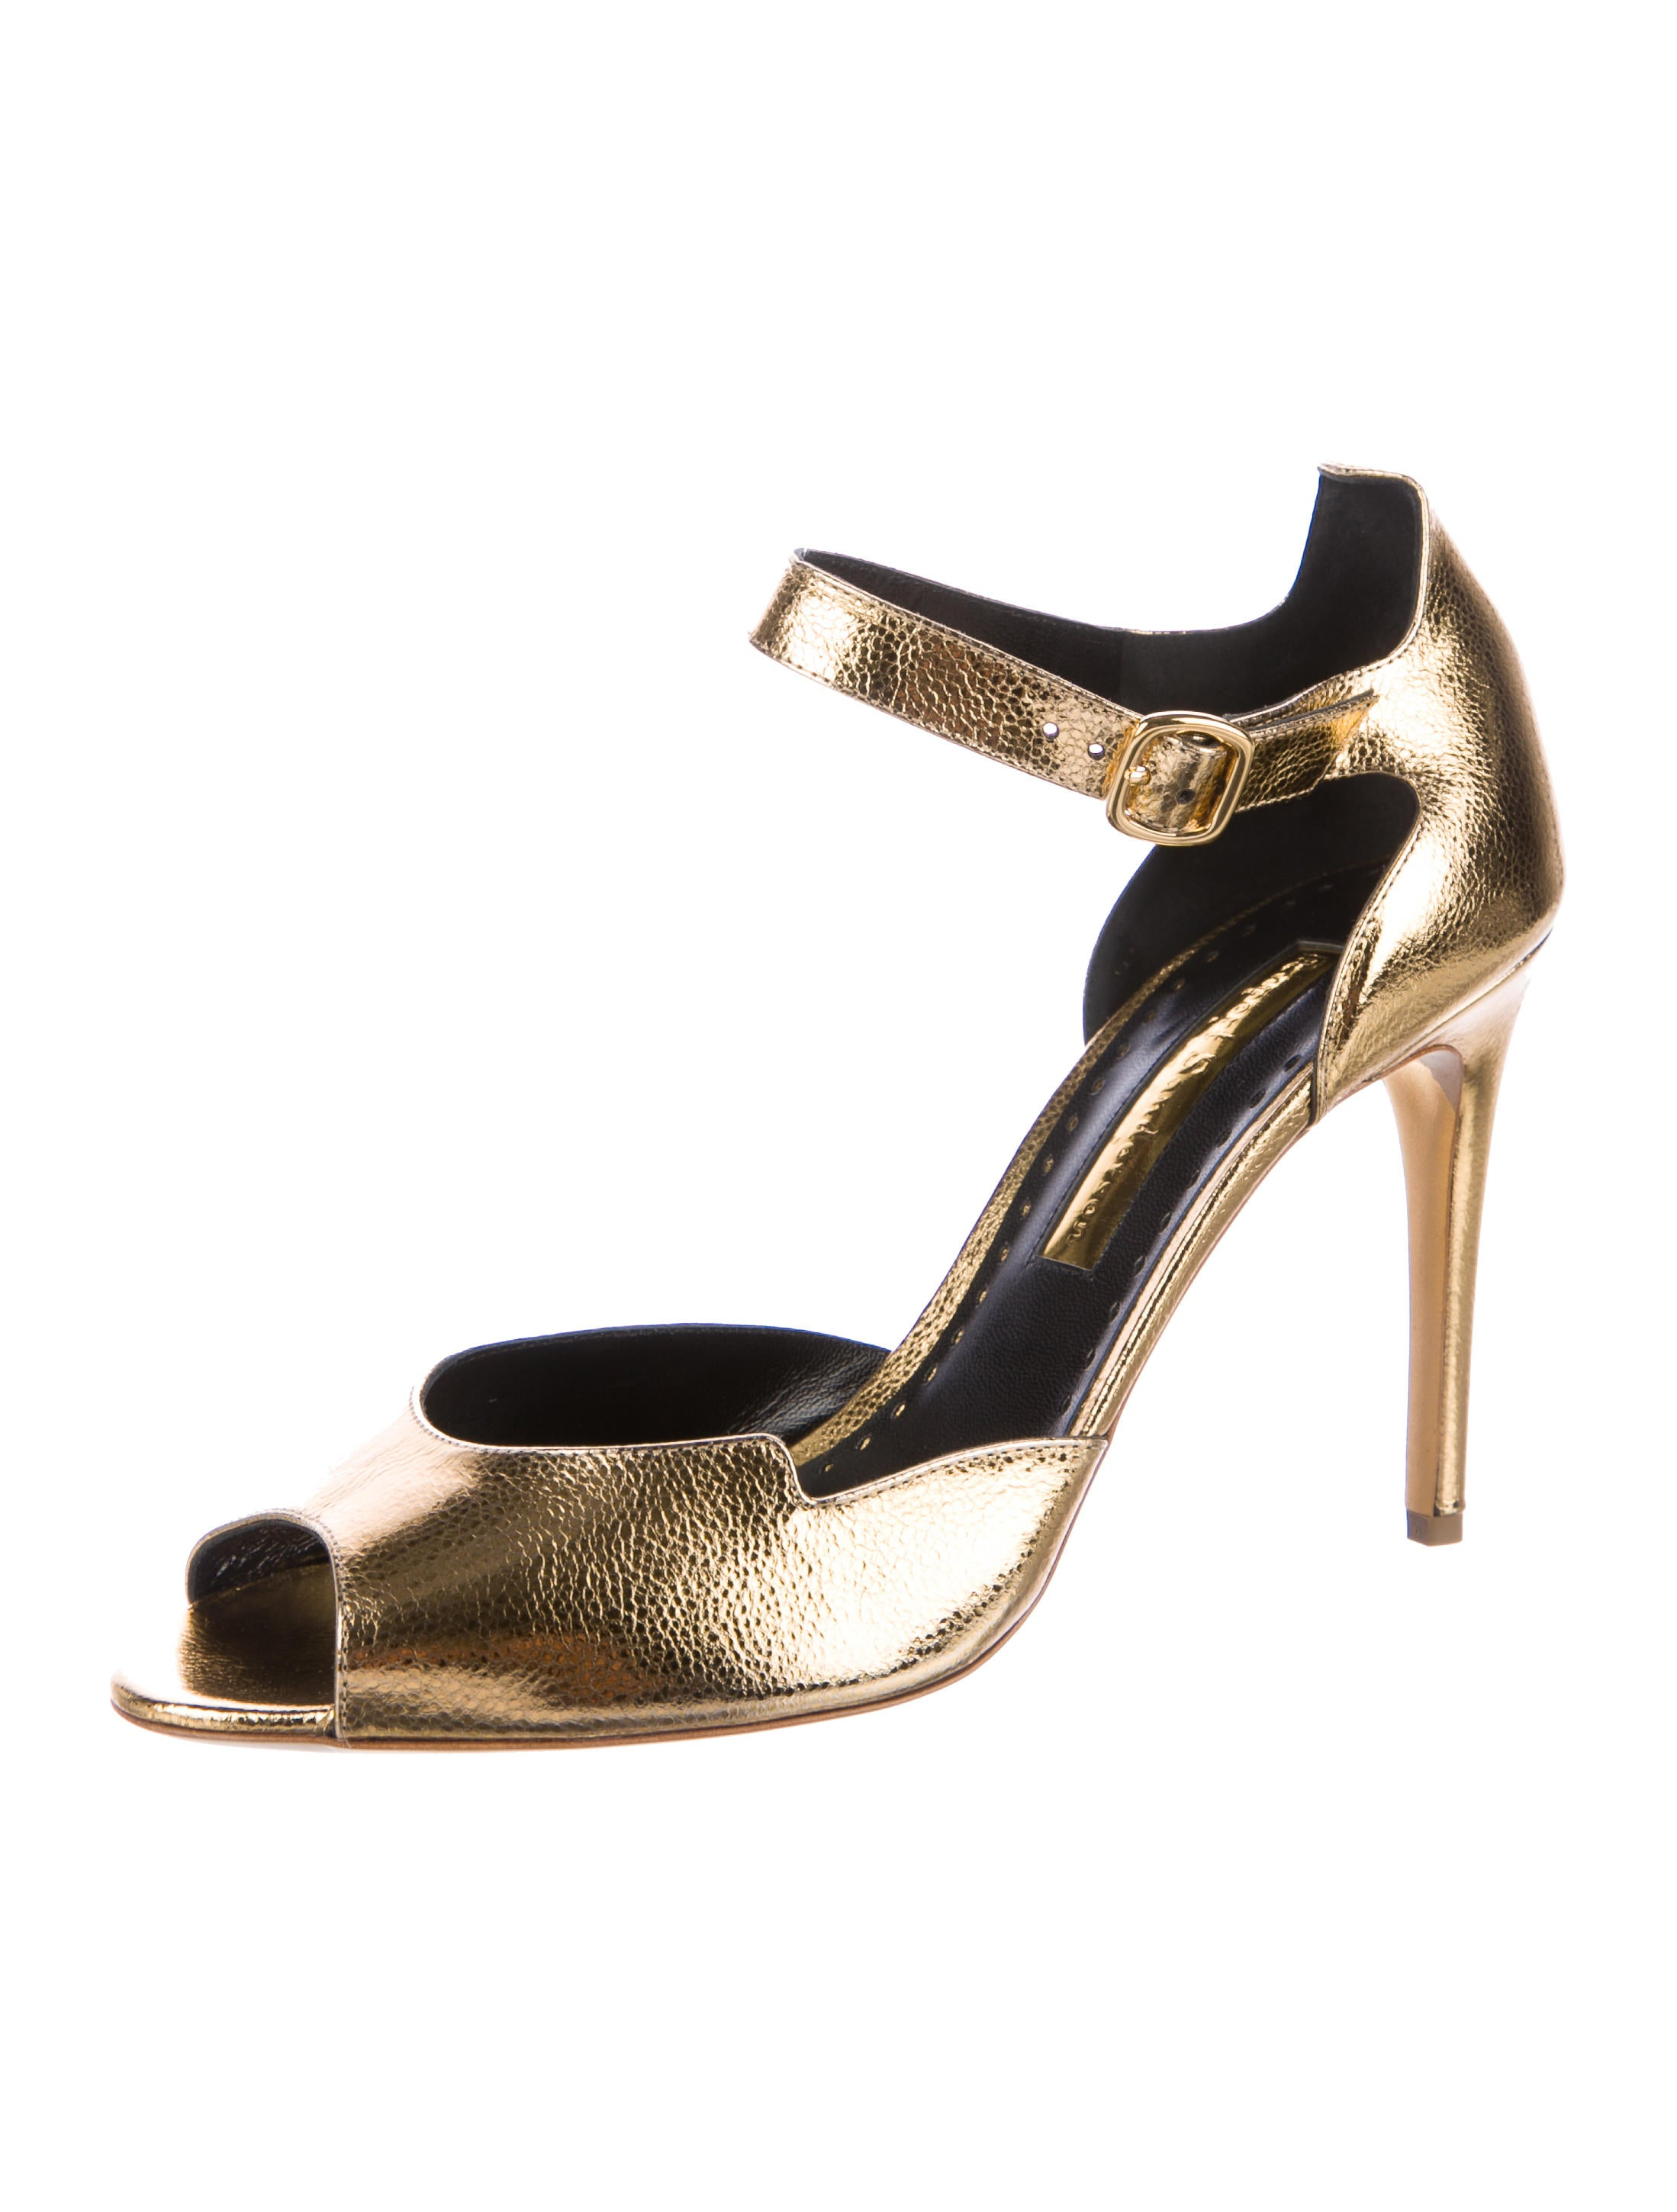 Rupert Sanderson Telita Metallic Pumps w/ Tags clearance shopping online sale perfect buy cheap find great fashion Style cheap price outlet best seller Wl6JbcwwH